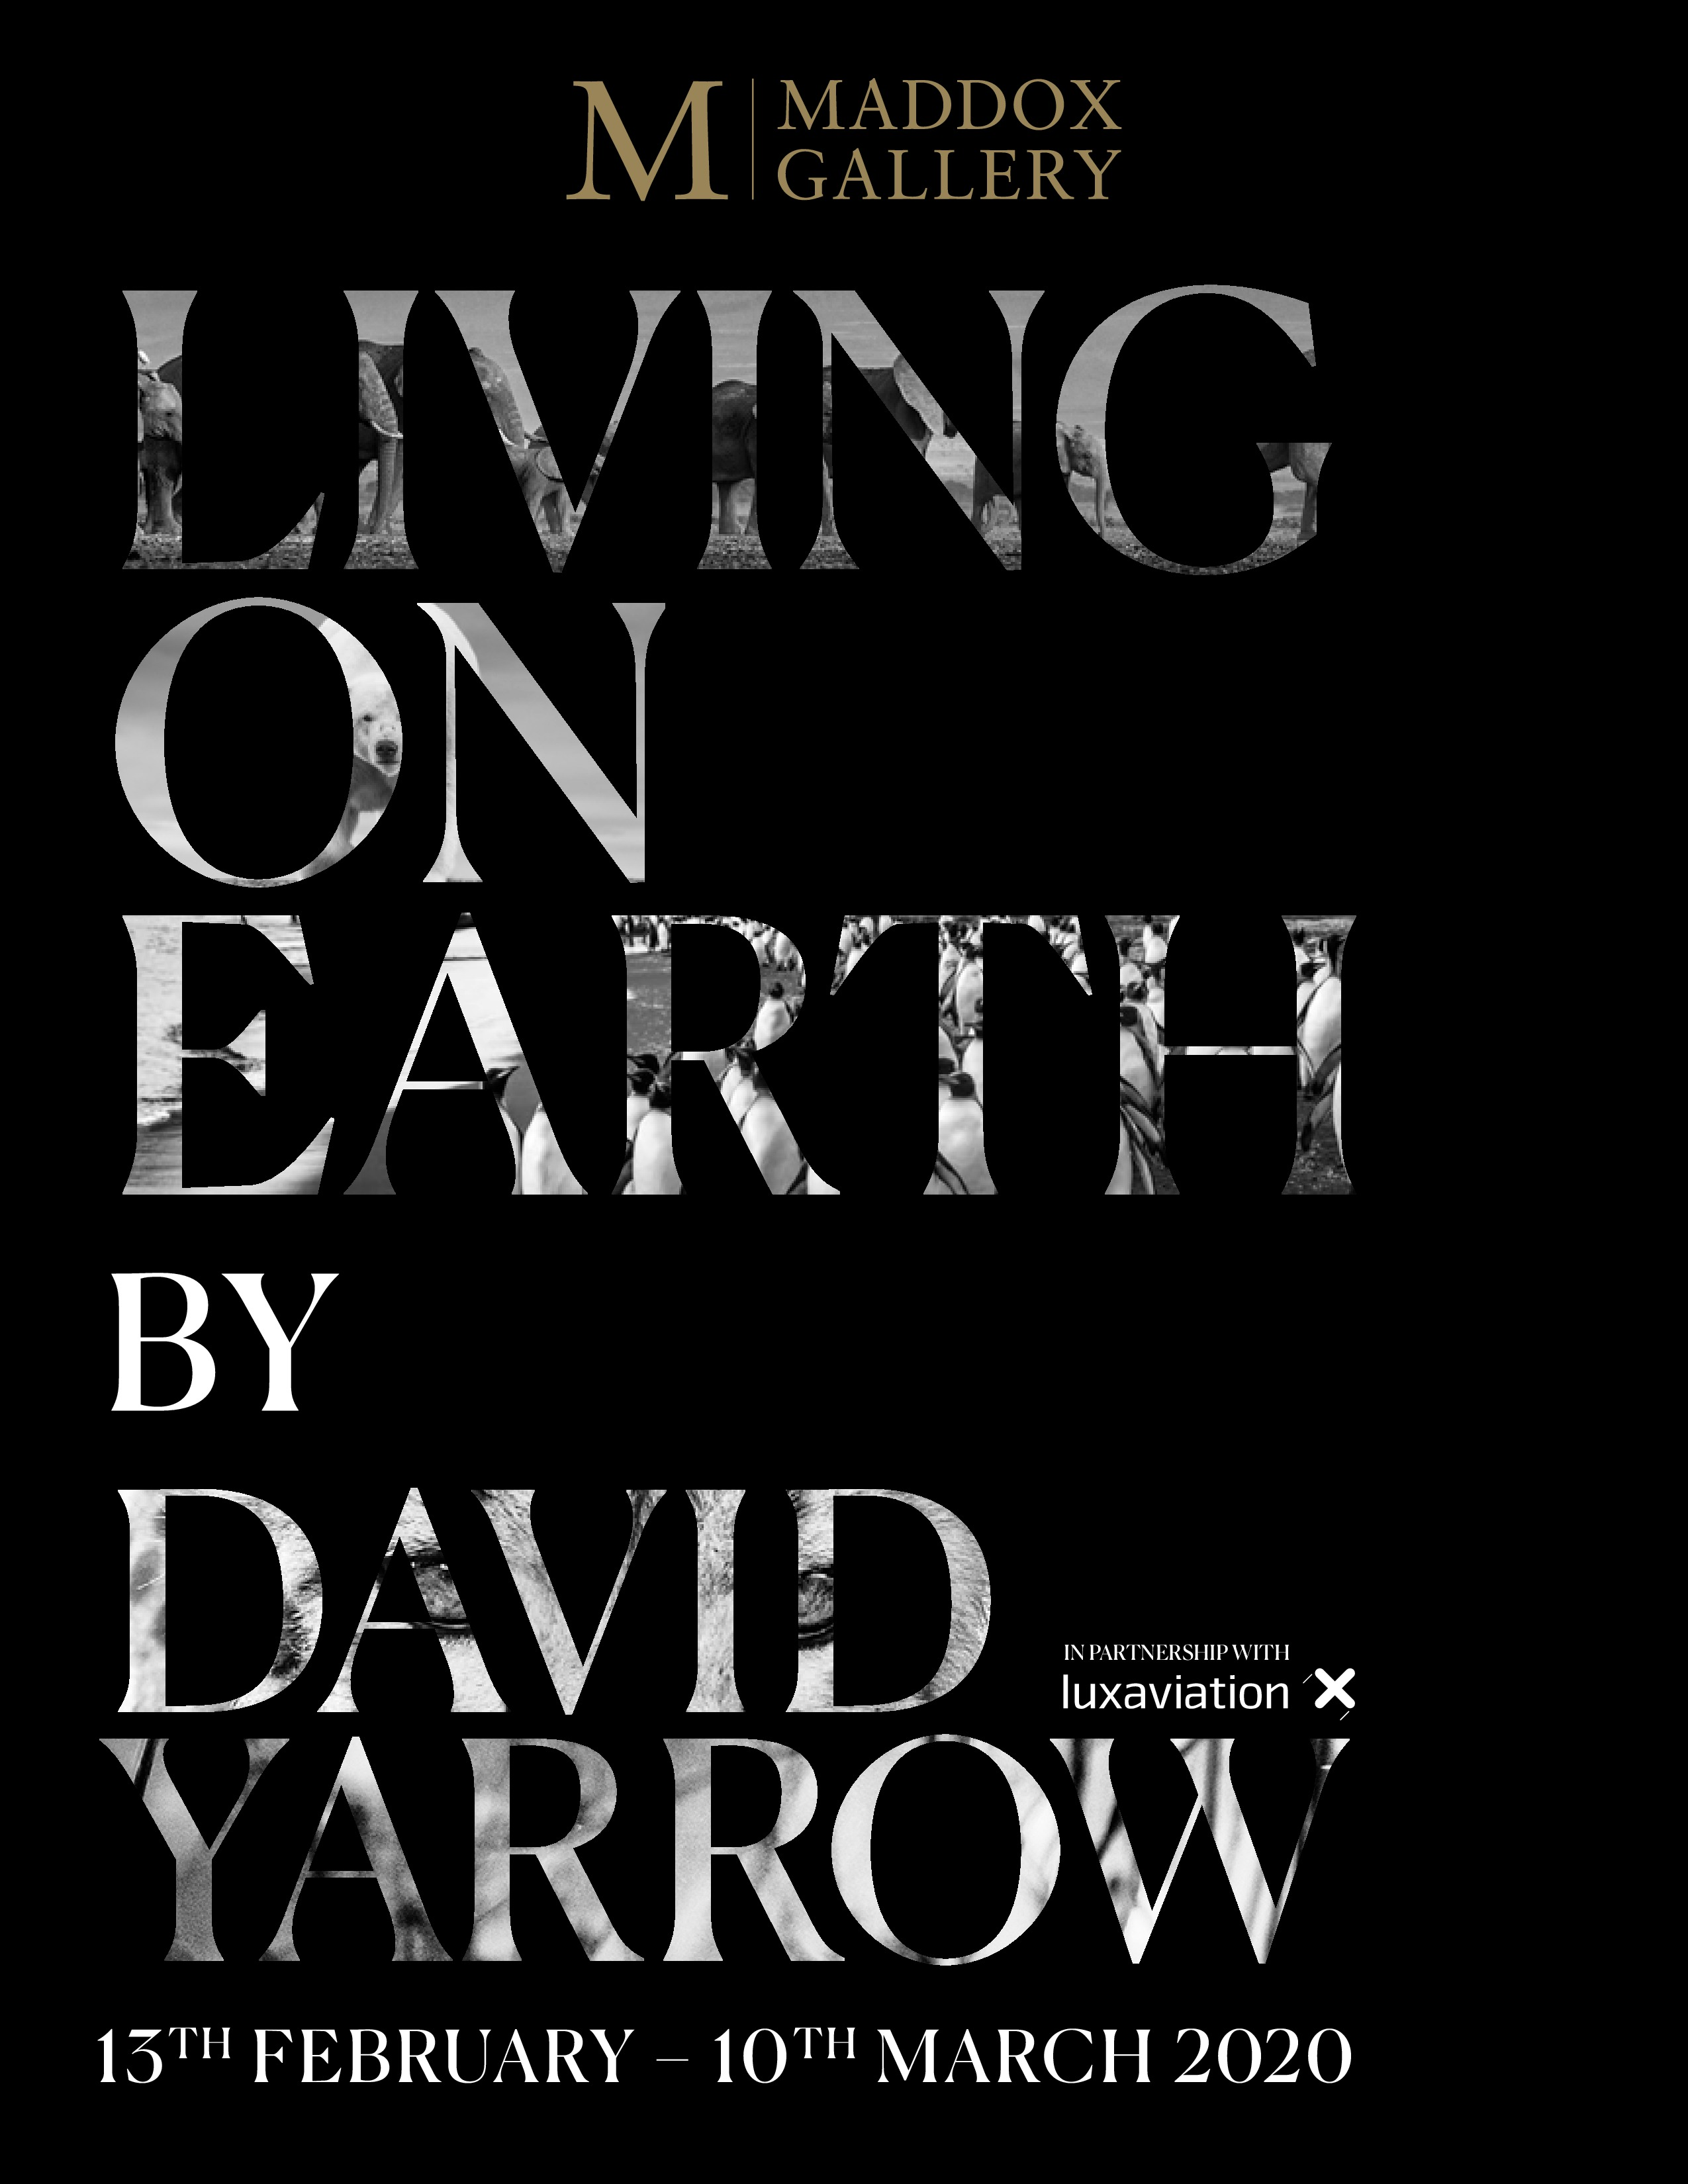 Maddox Gallery Living On Earth by David Yarrow Catalog Cover